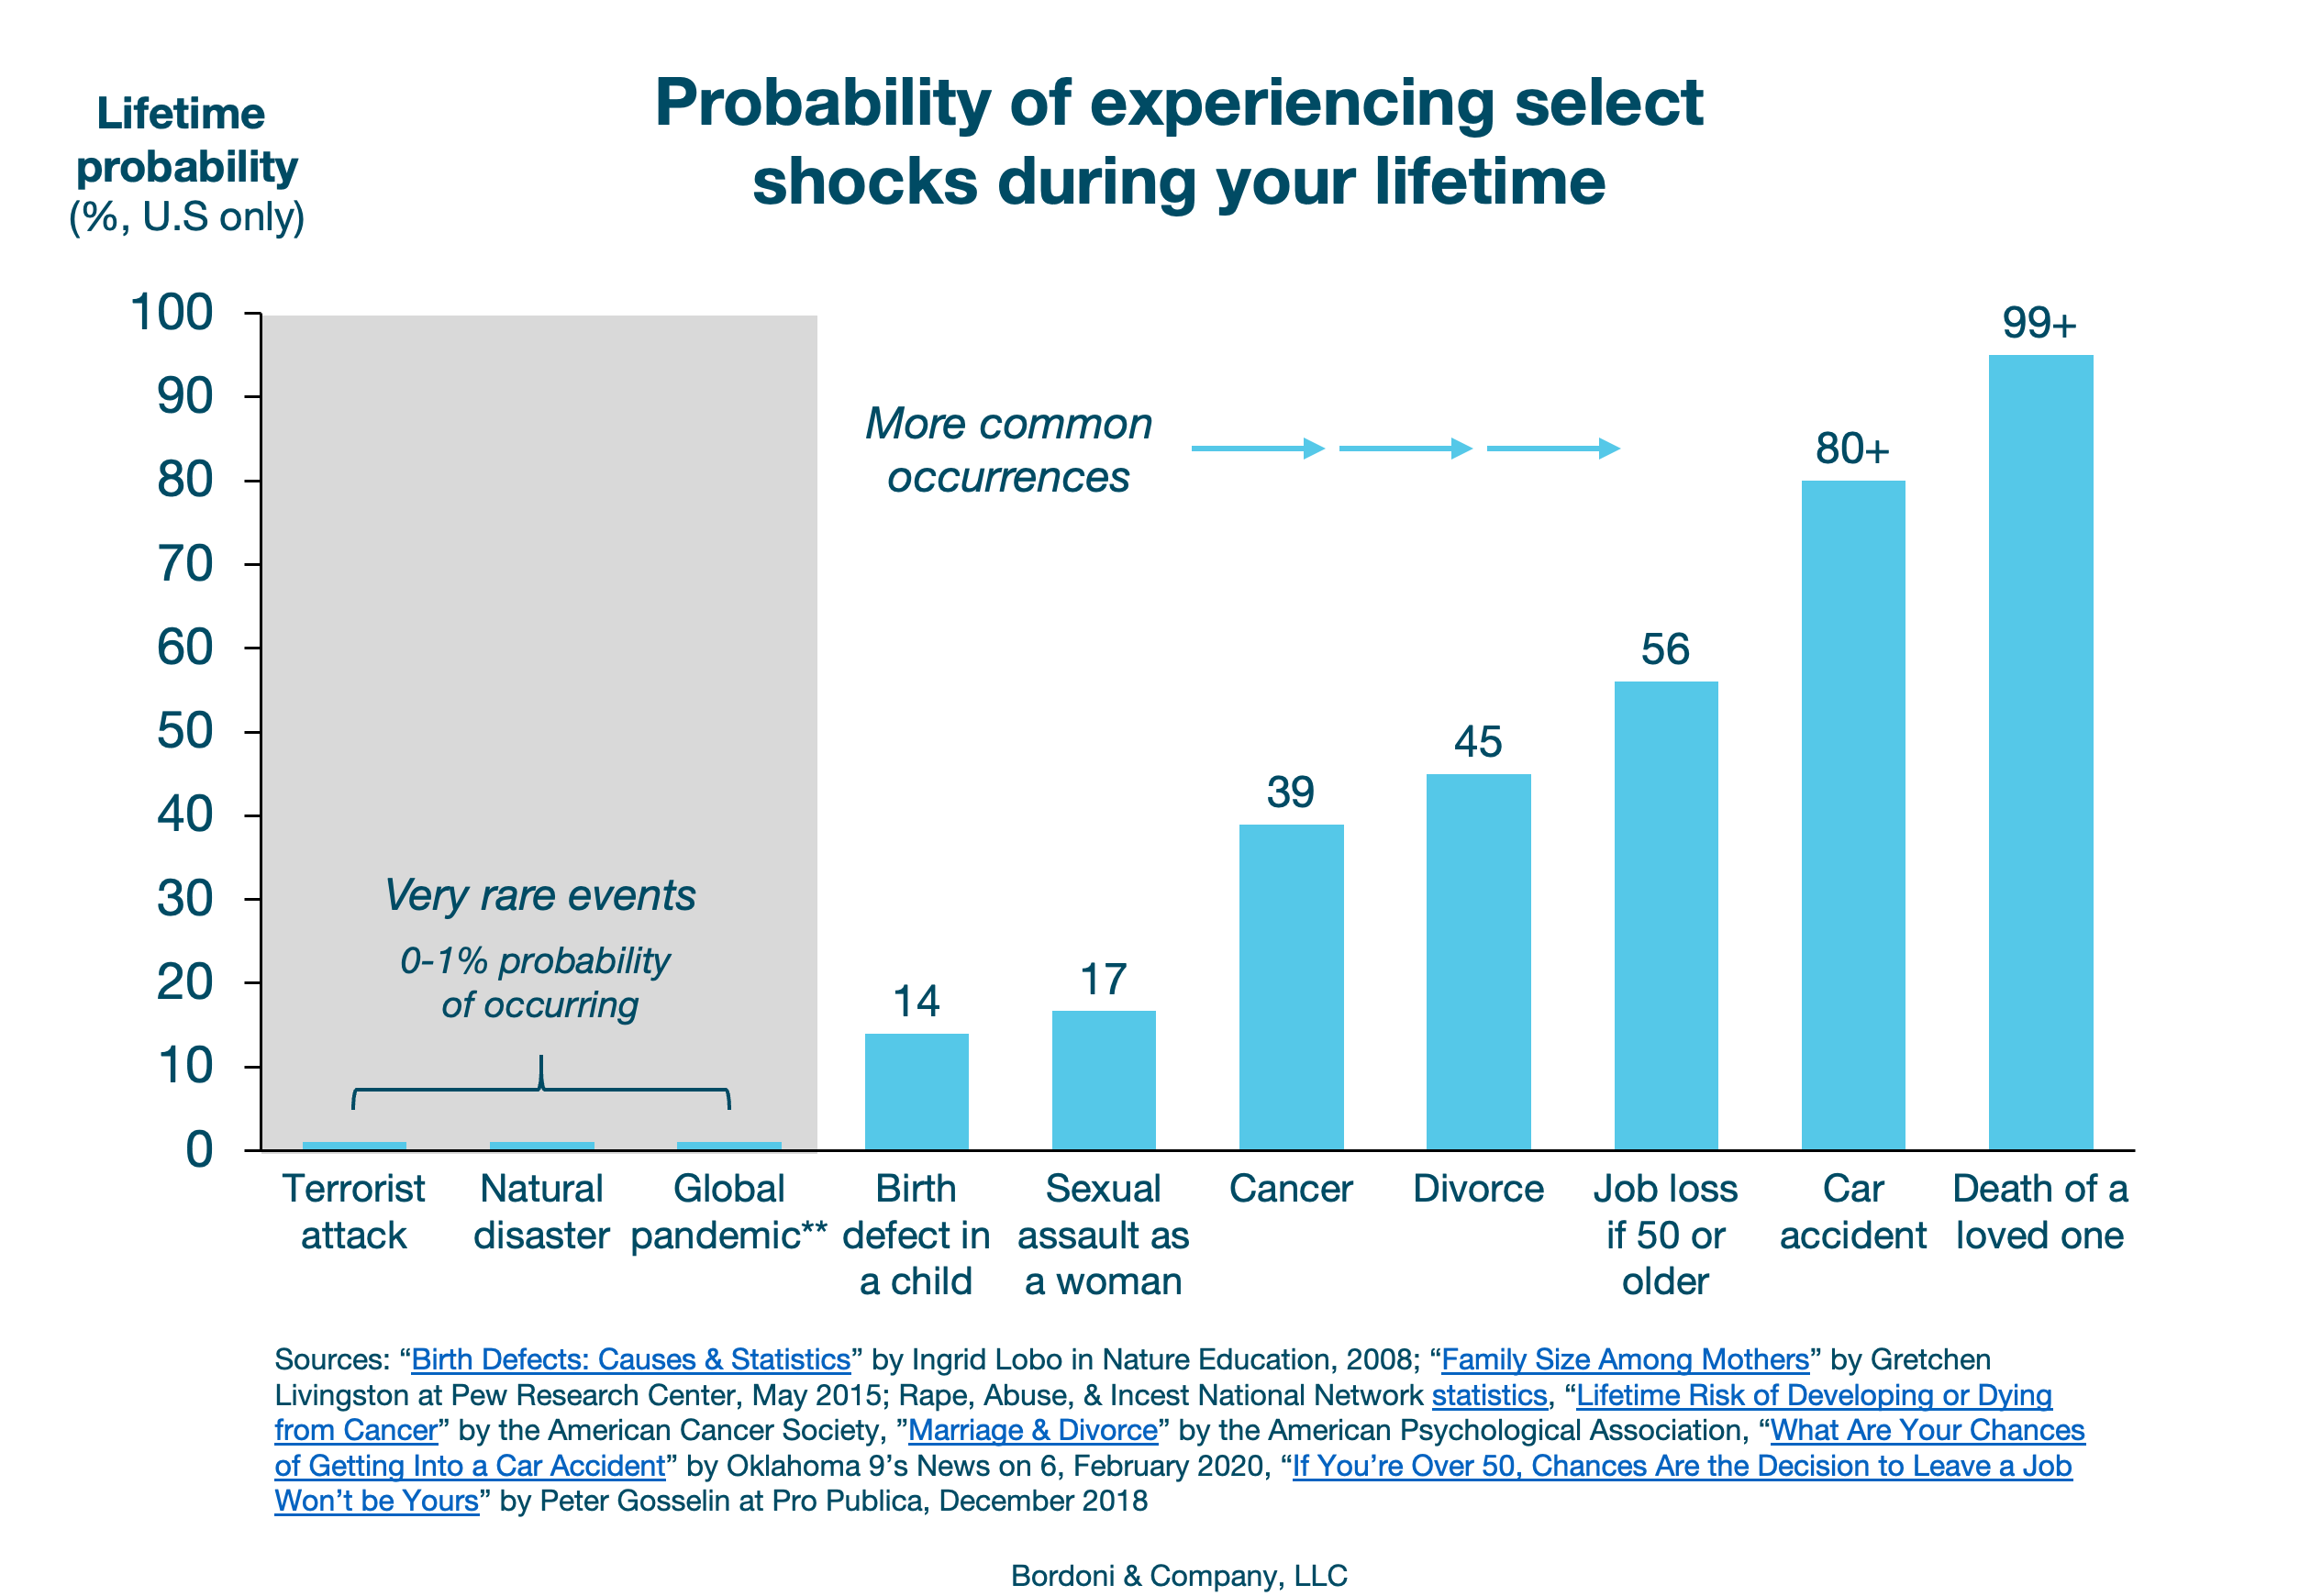 Probability of experiencing select shocks during your lifetime | Bordoni & Company